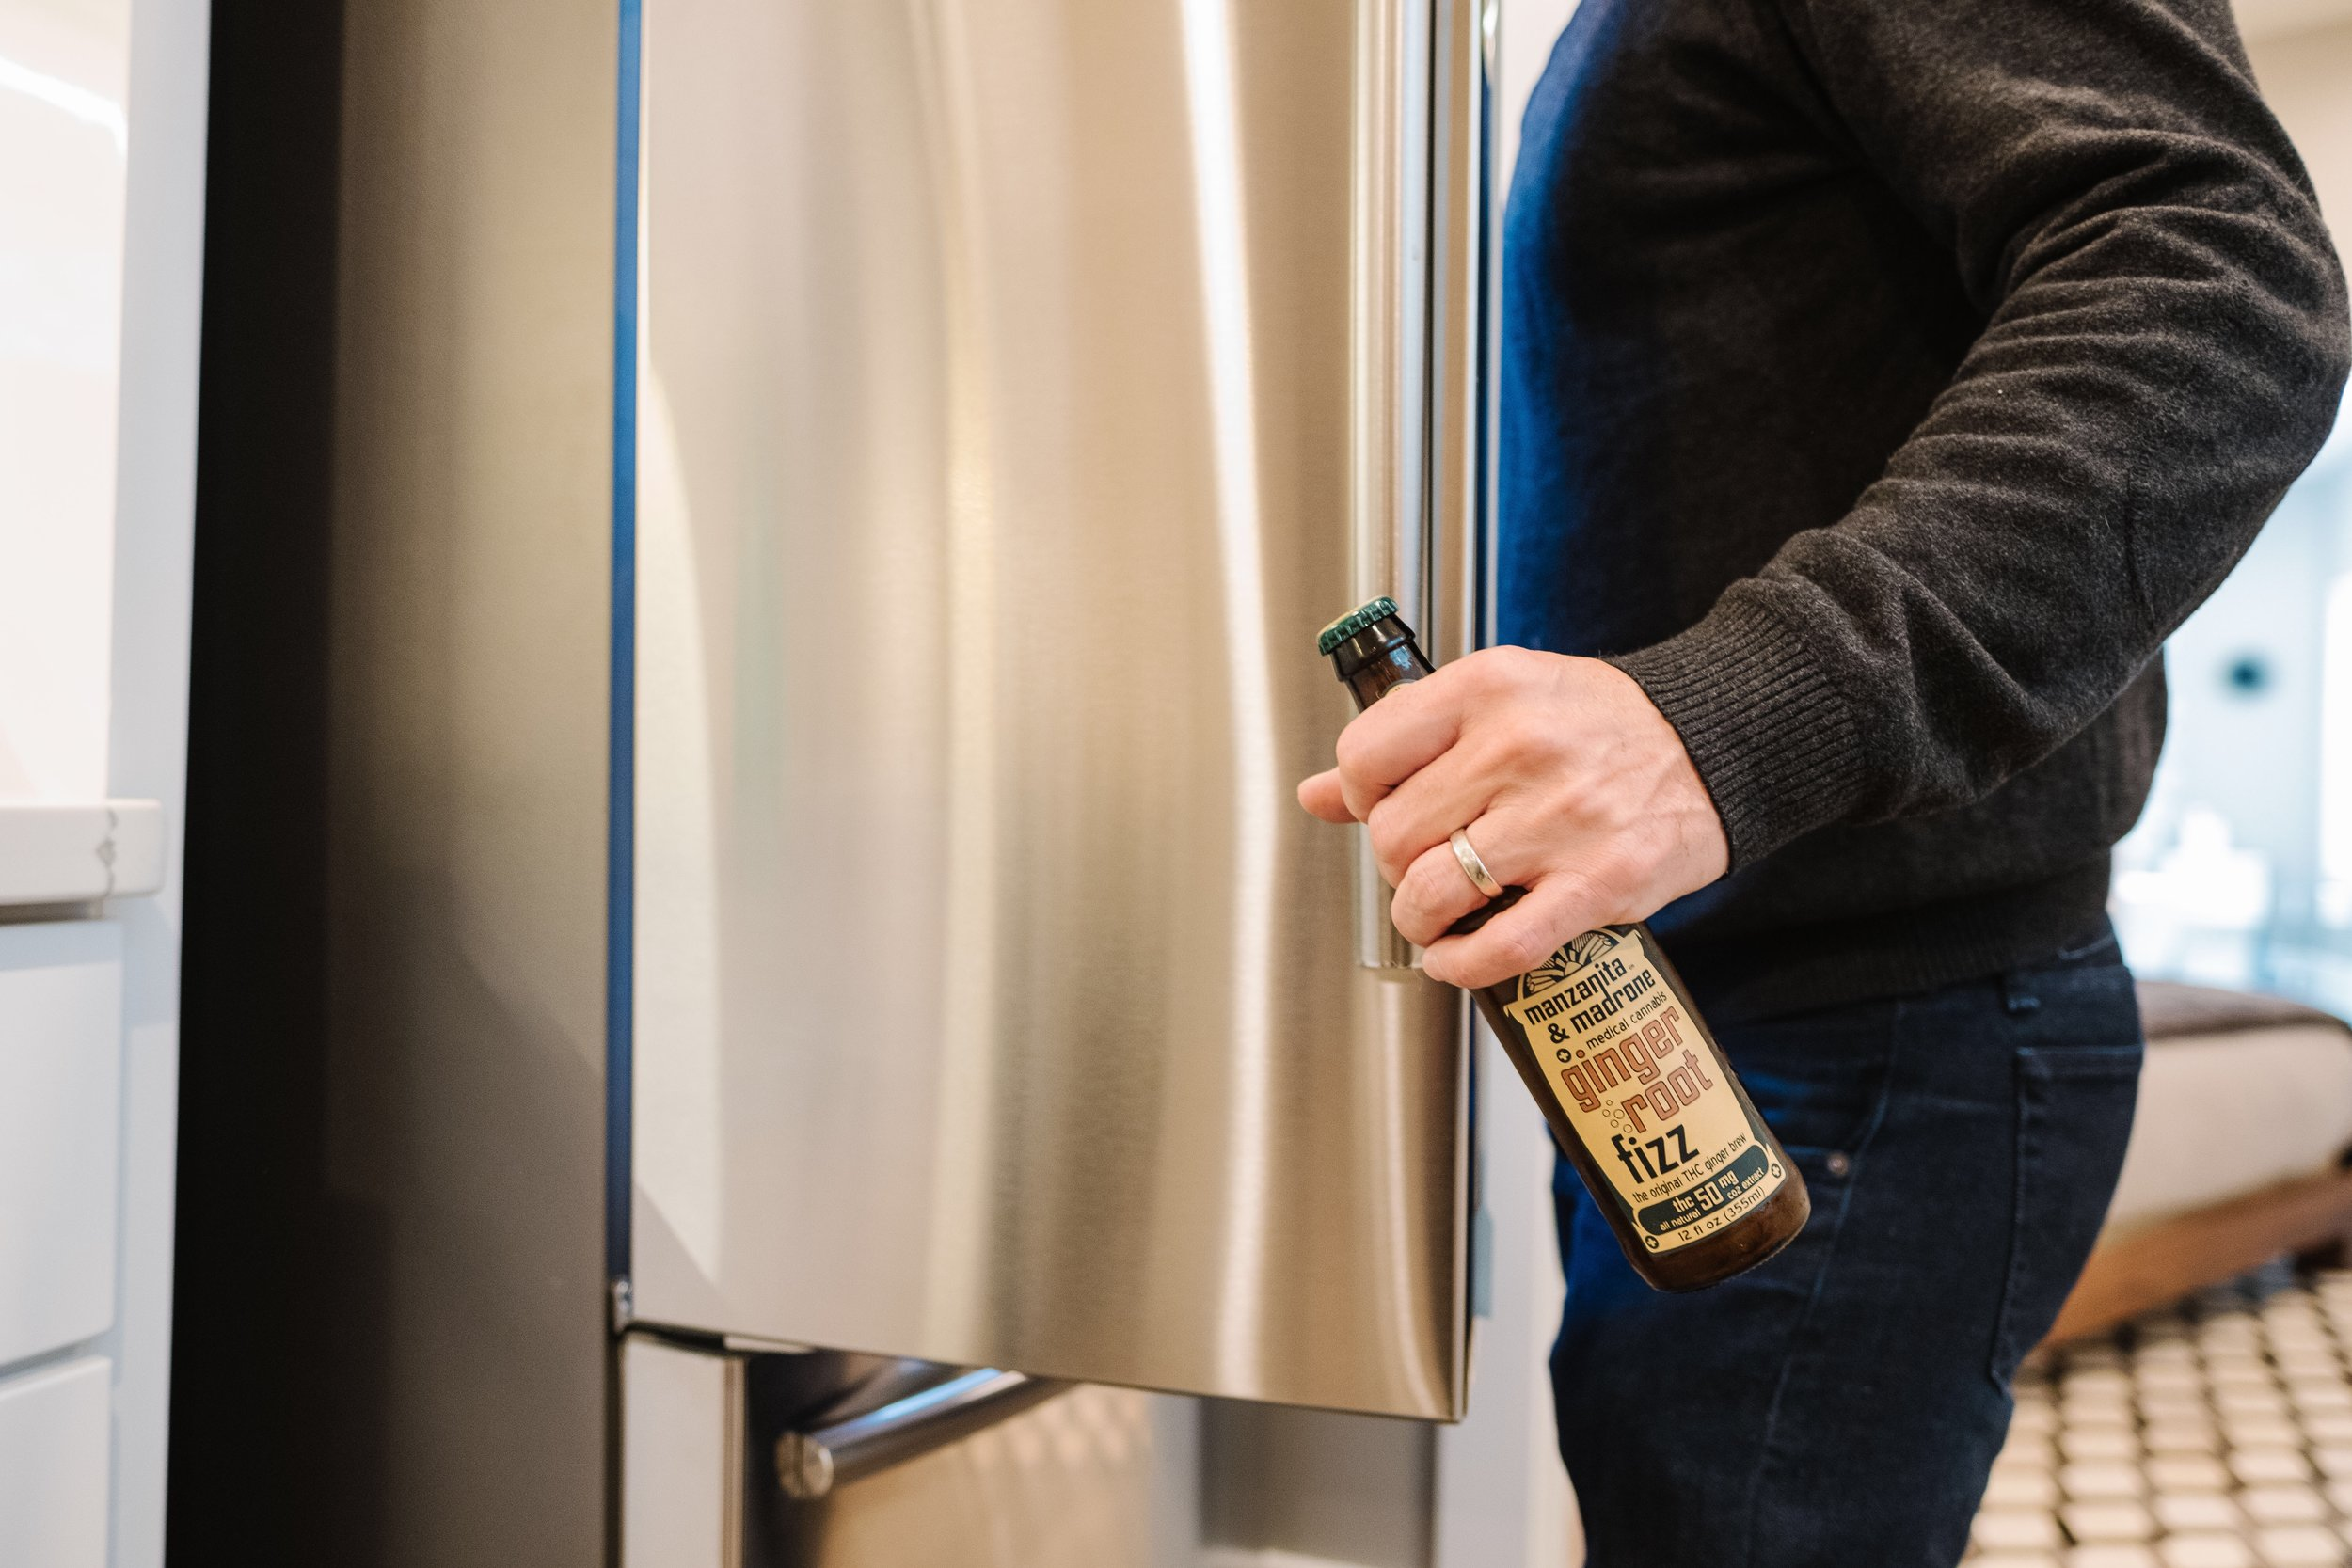 - What's the latest thing popping in the fridge?